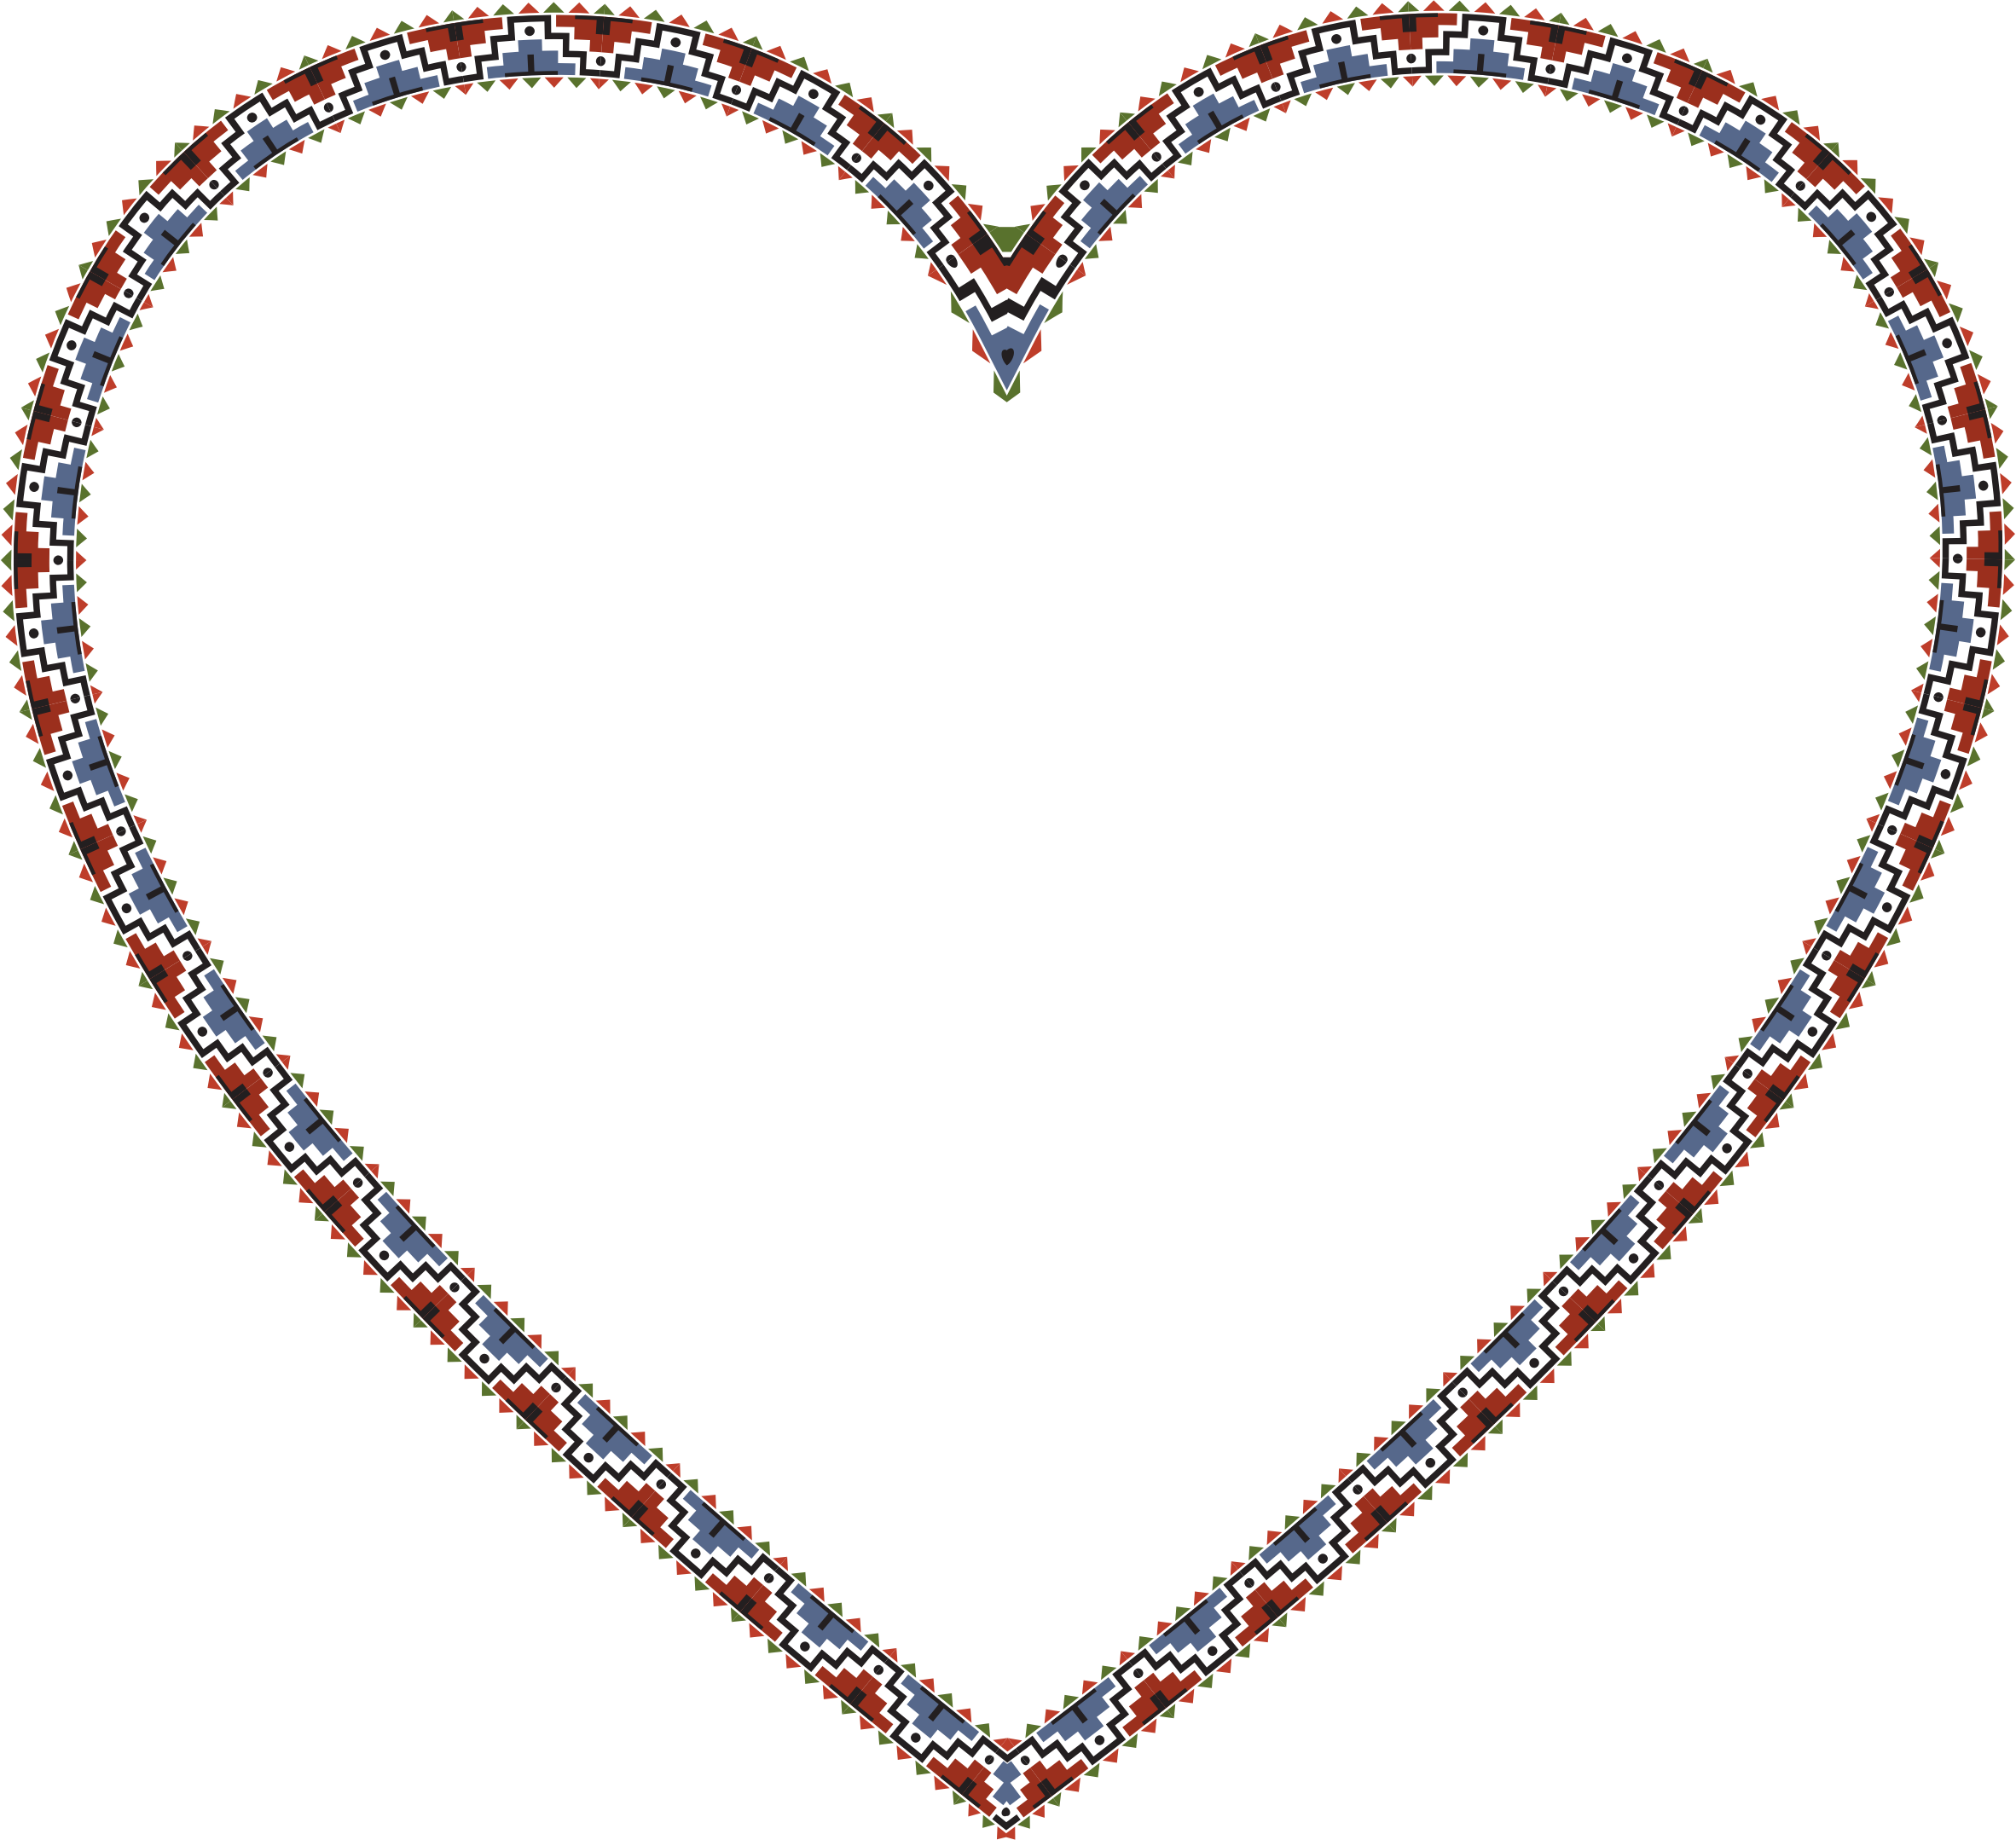 Native American Heart by GDJ